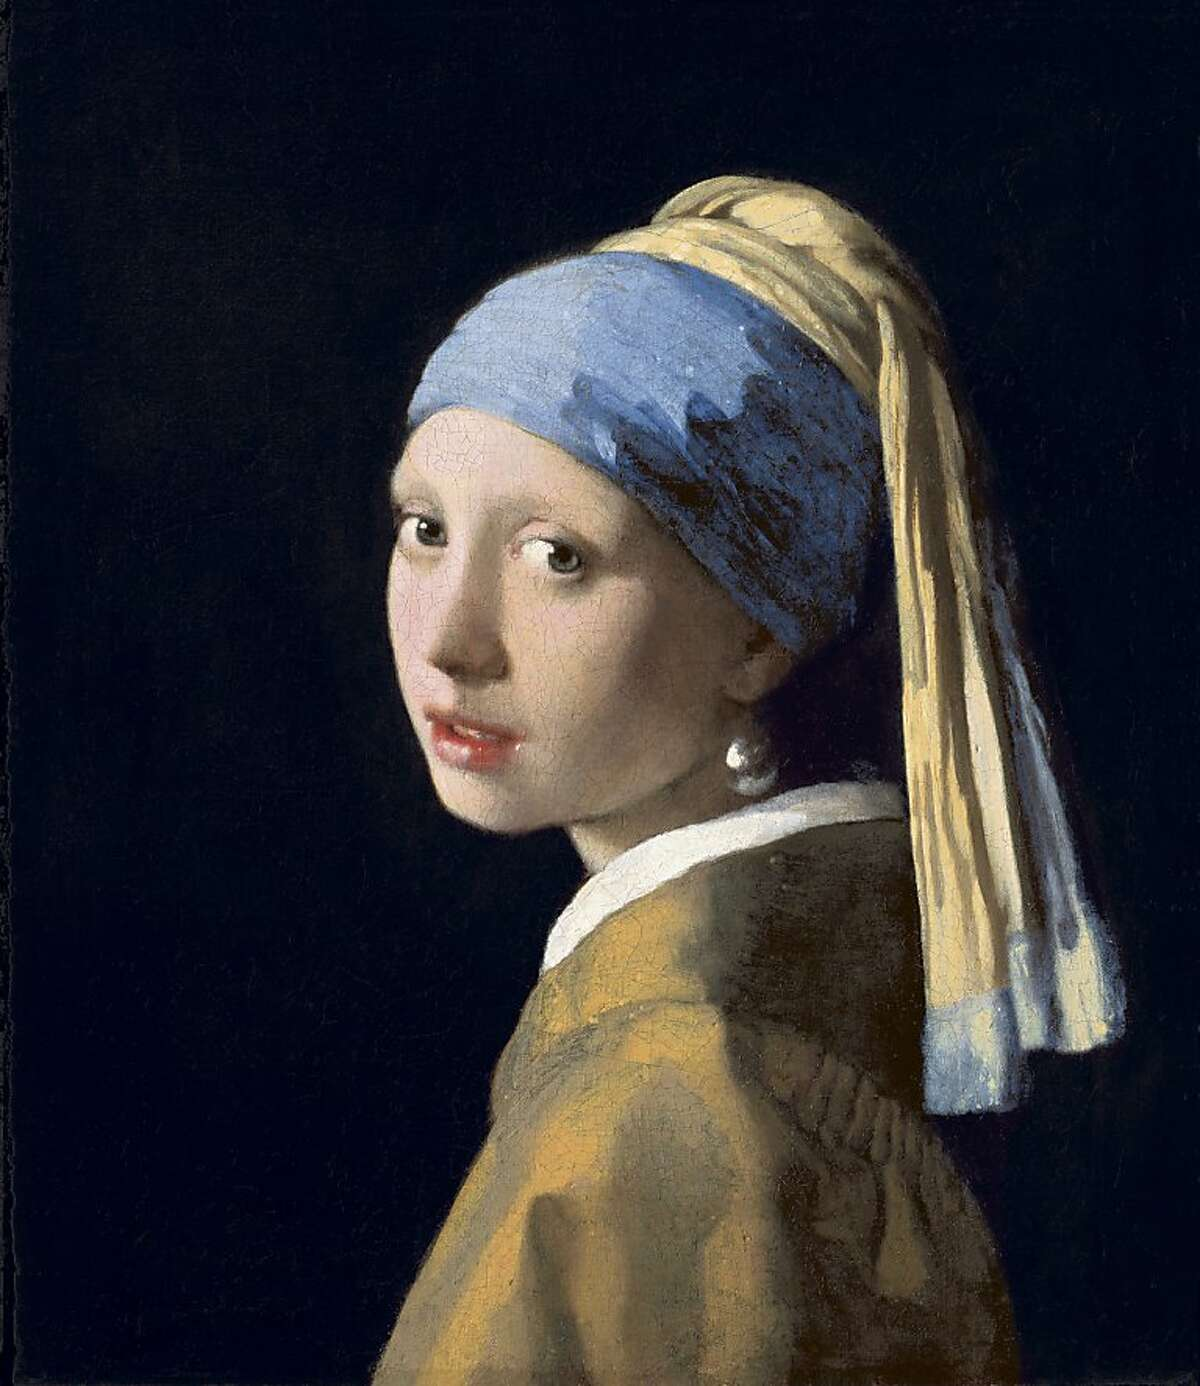 Johannes Vermeer (Delft 1632-1675 Delft) Girl with a Pearl Earring, ca. 1665 Oil on canvas, 17 1/2 x 15 3/8 in. (44.5 x 39 cm) Royal Picture Gallery Mauritshuis, The Hague Bequest of Arnoldus des Tombe, 1903 (inv. no. 670) Image courtesy of the Royal Picture Gallery Mauritshuis, The Hague